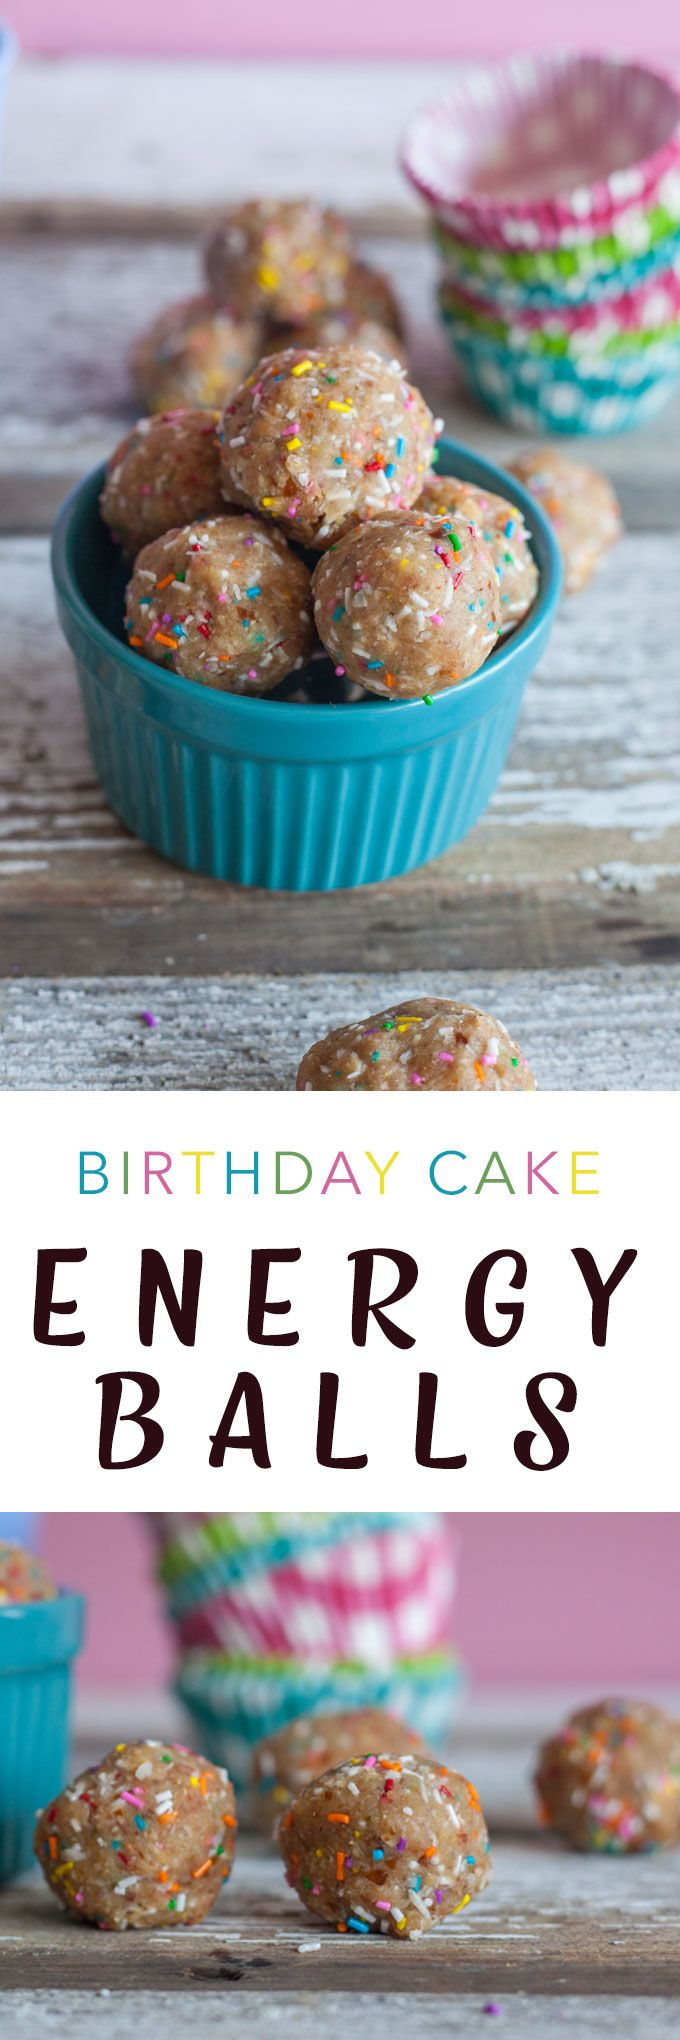 No Bake Energy Balls VEGAN Birthday Cake Recipe Snack games